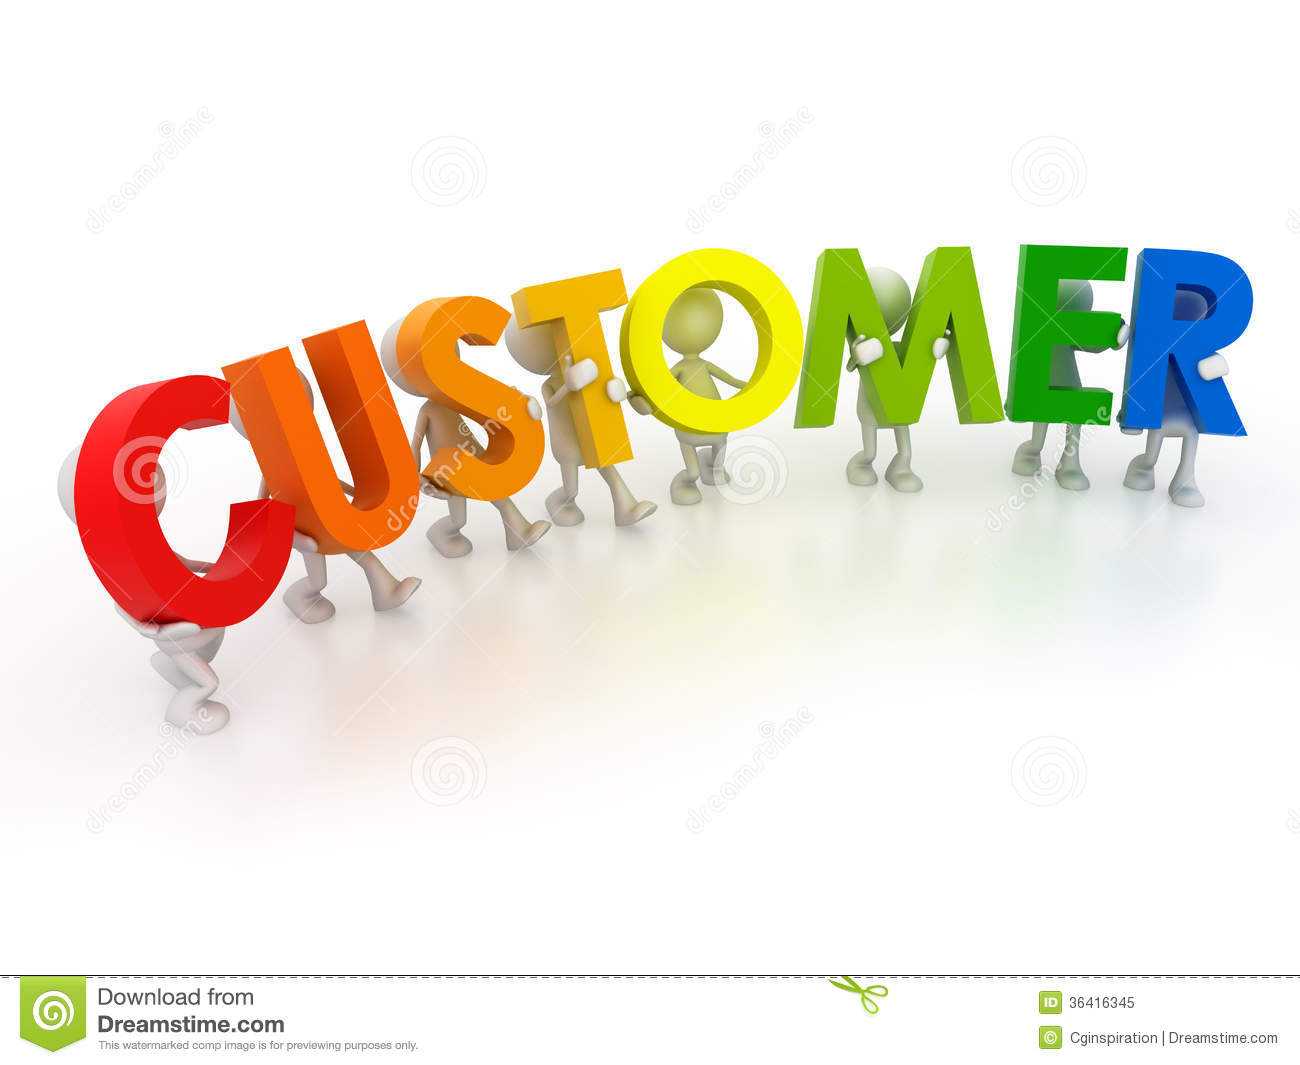 Customer Support Team Royalty Free Stock Photo - Image: 36416345